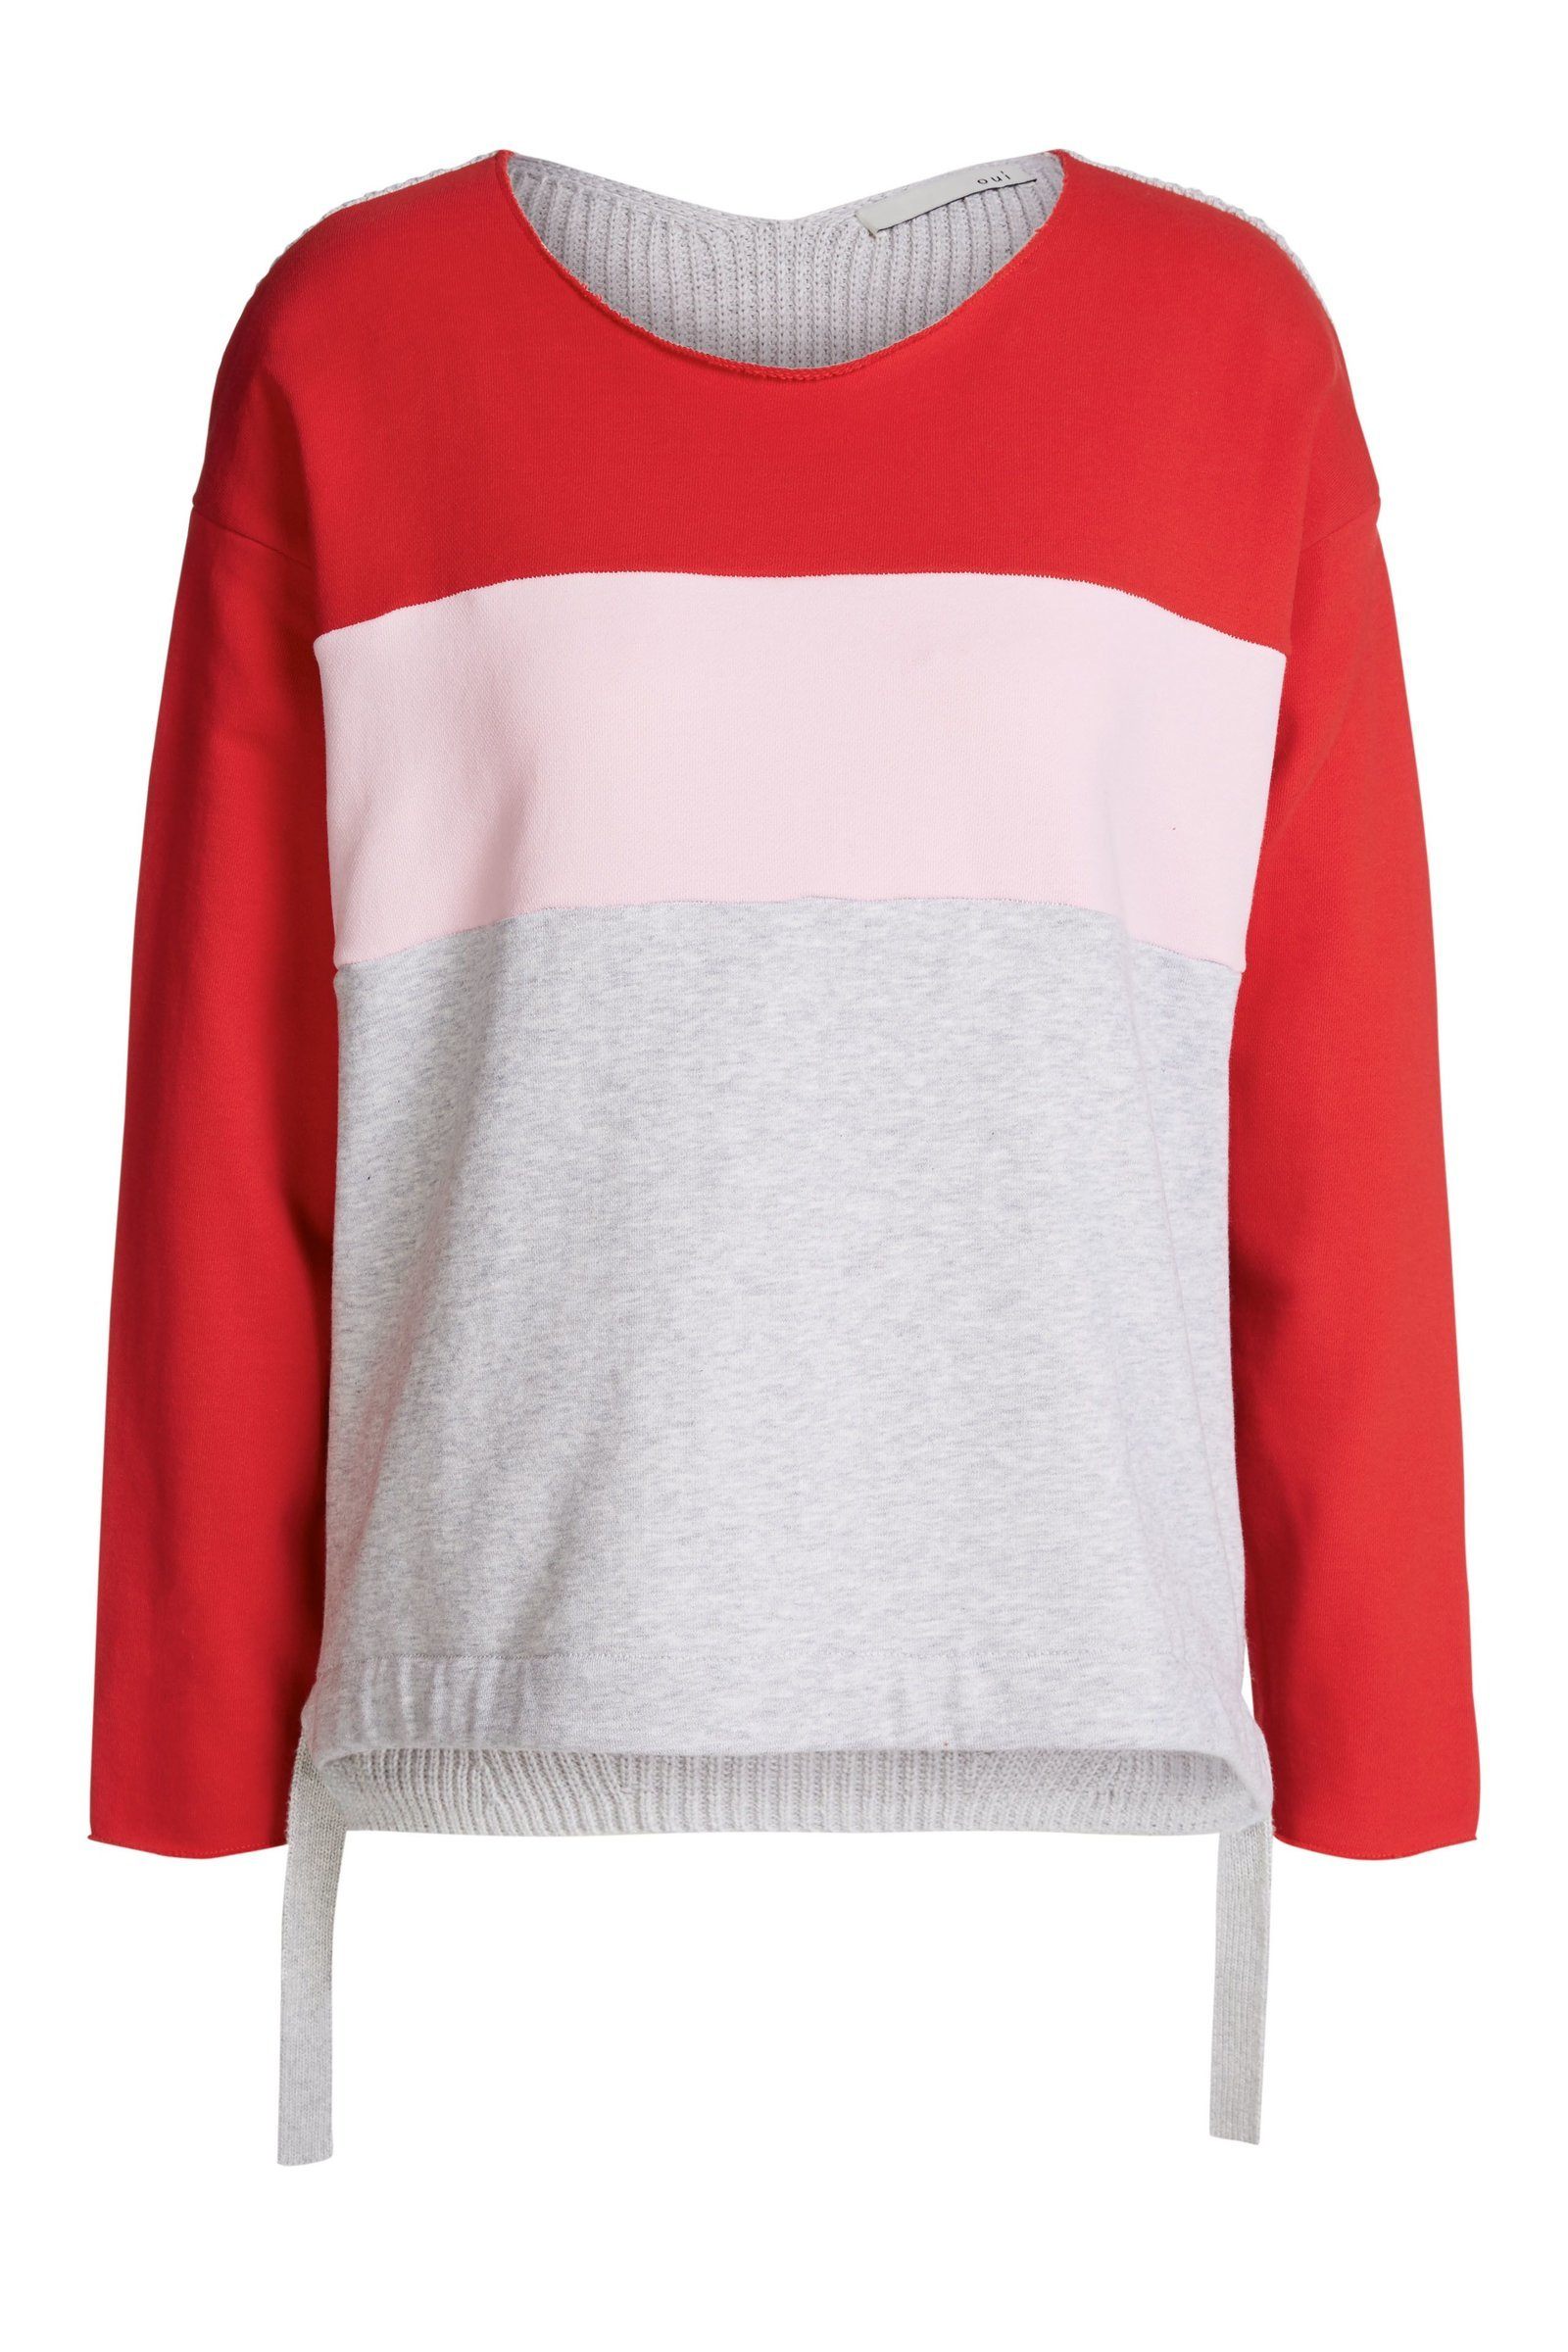 Colour Blocking Sweater with Red, Pink and Grey